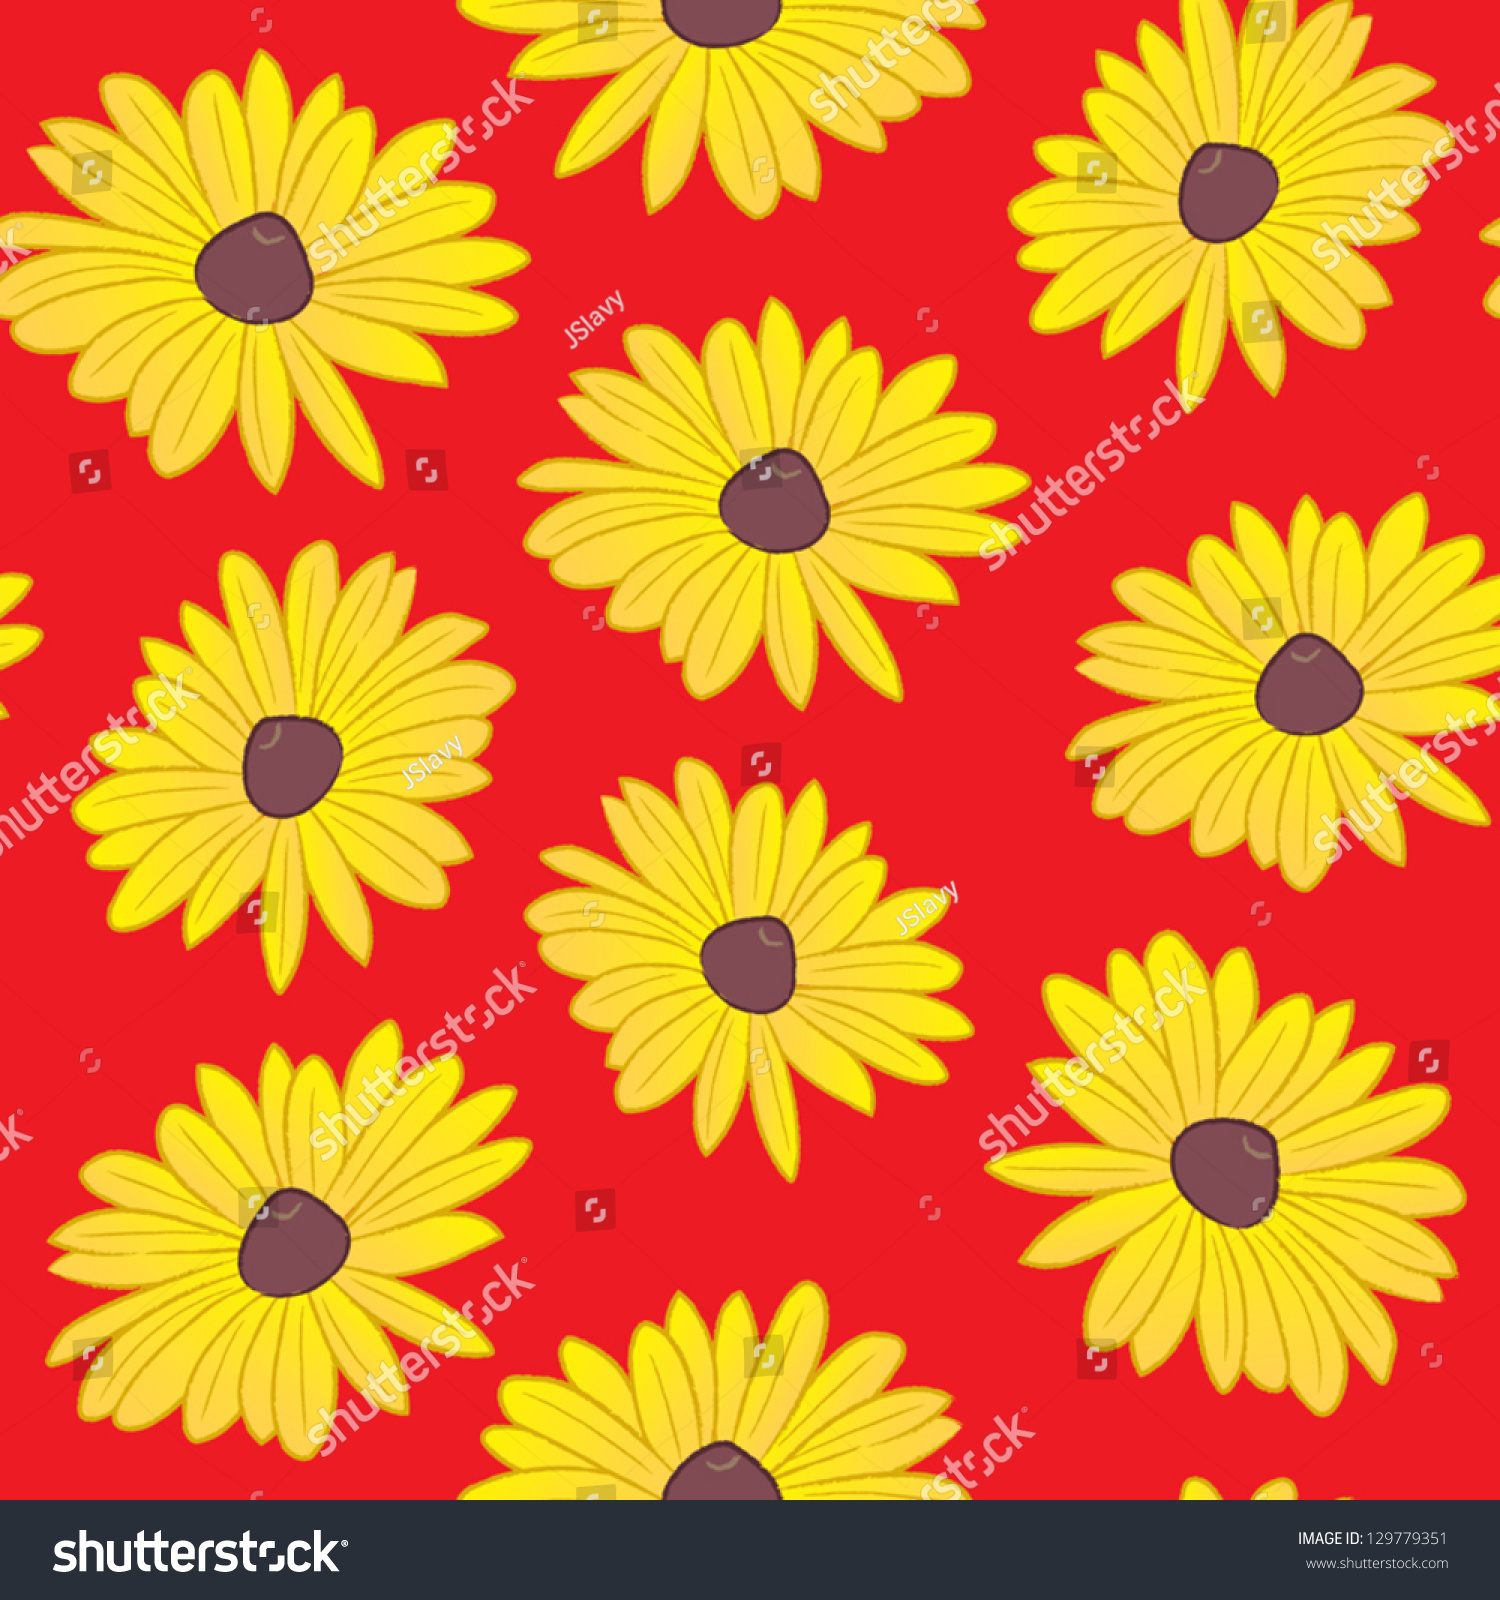 A Seamless Pattern The Maryland State Flower The Black Eyed Susan The Co